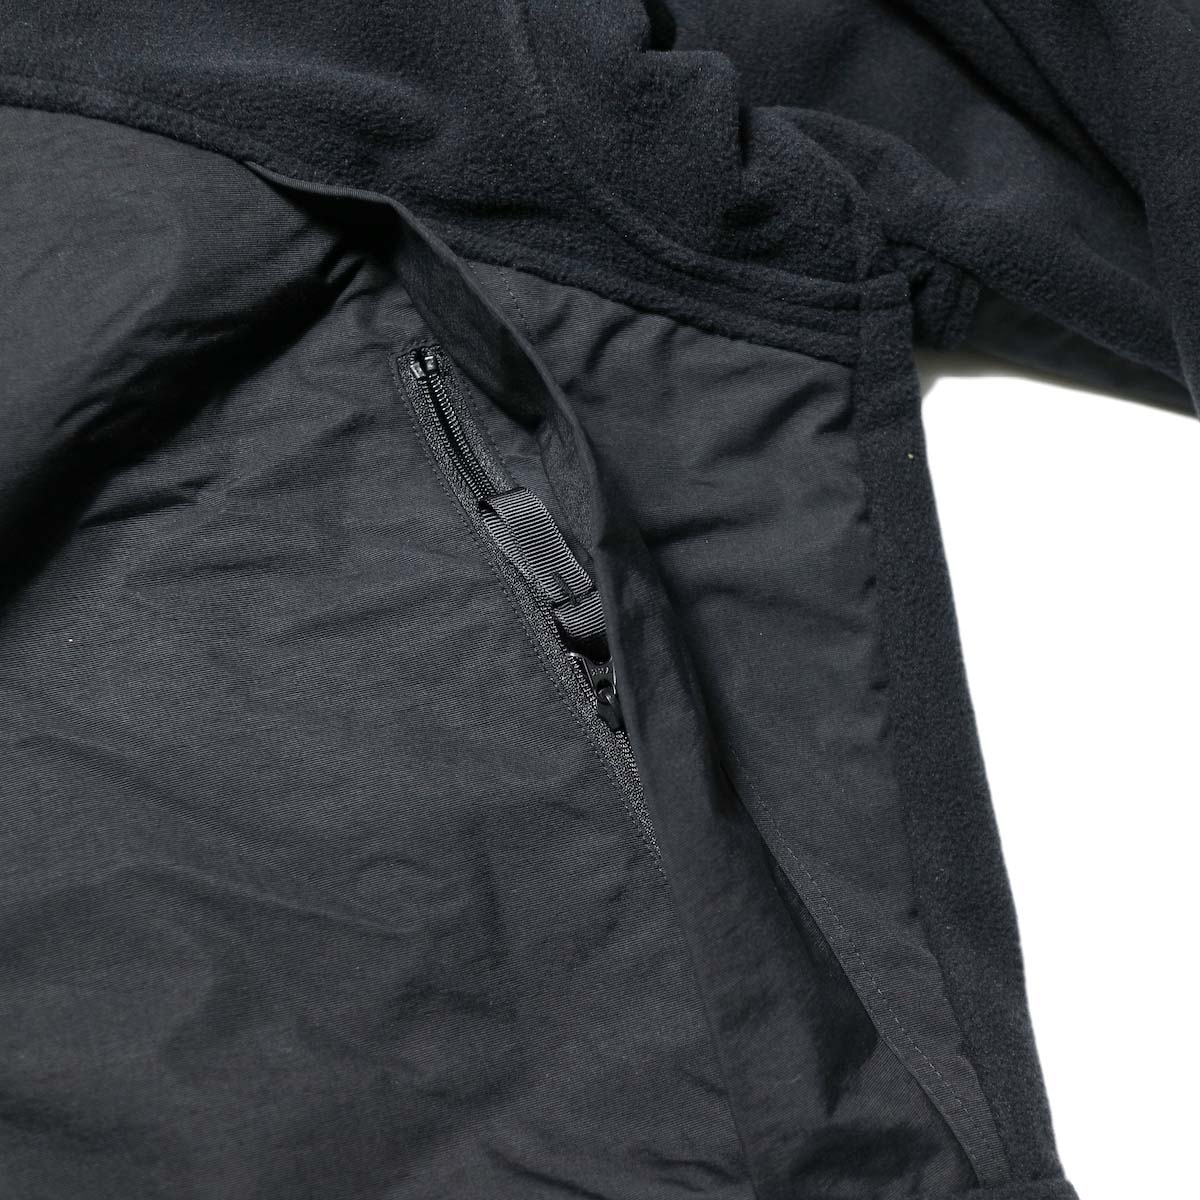 Marmot Histric Collection / Alpinist Tech Sweater (Black×Black)ポケット